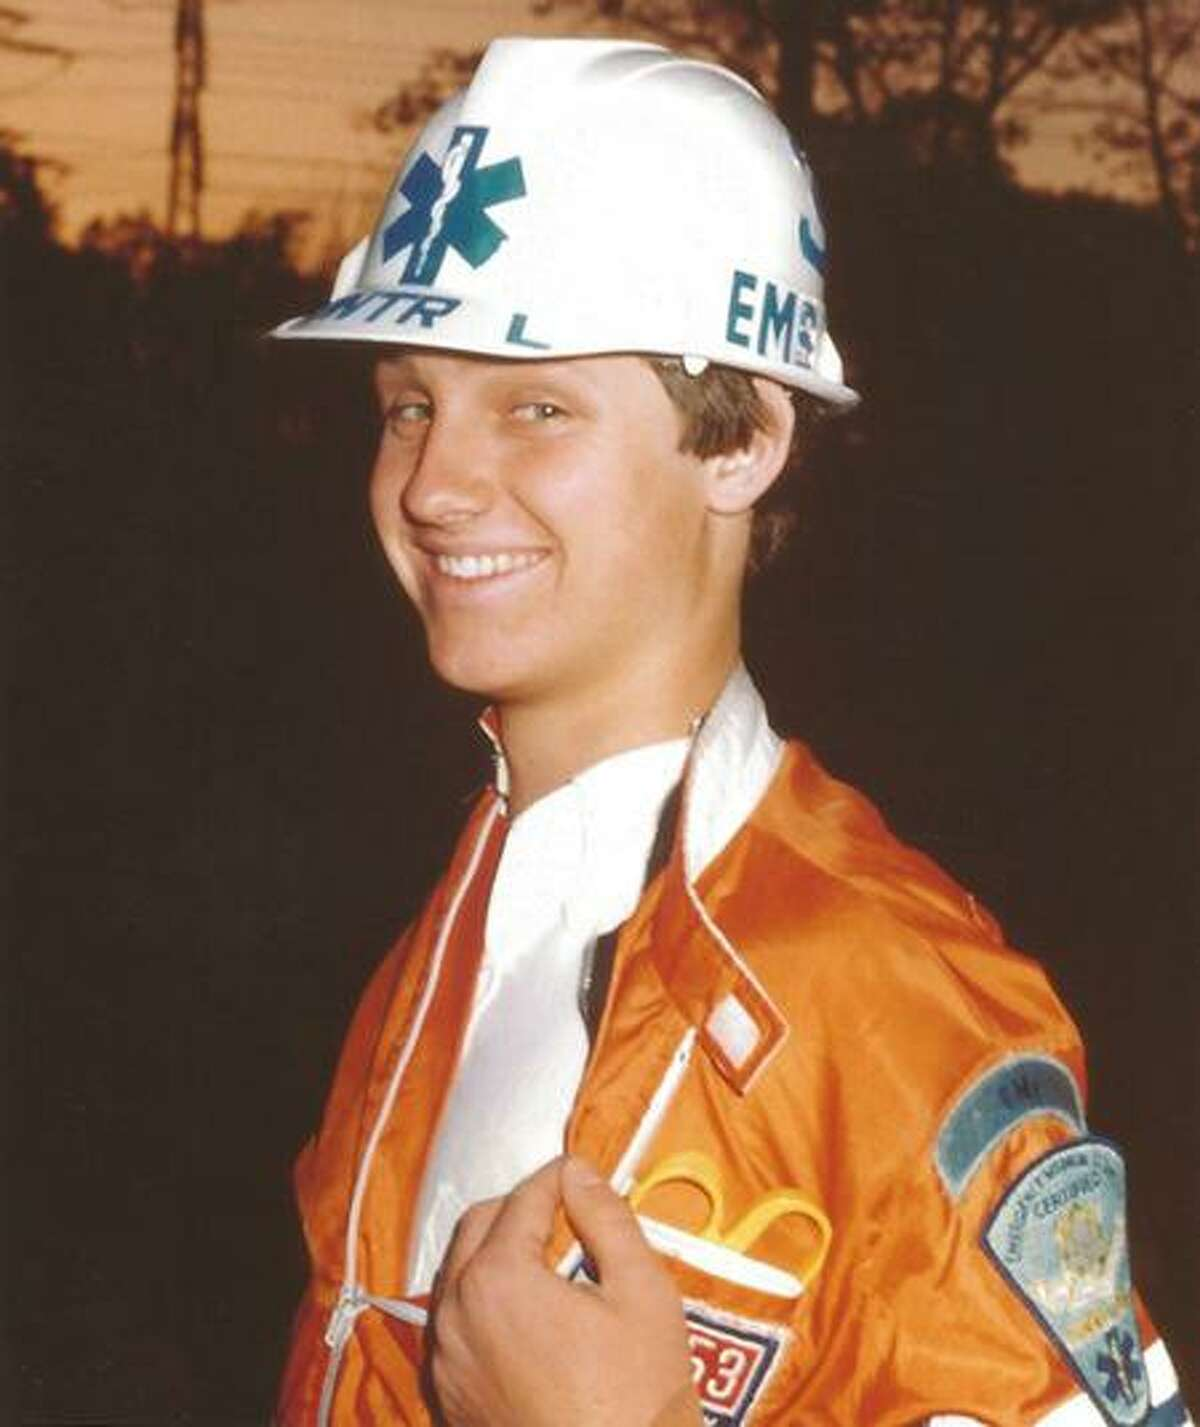 High School 9-1-1 Director Tim Warren during his days as a Postie, where he volunteered from 1982 through 1985.